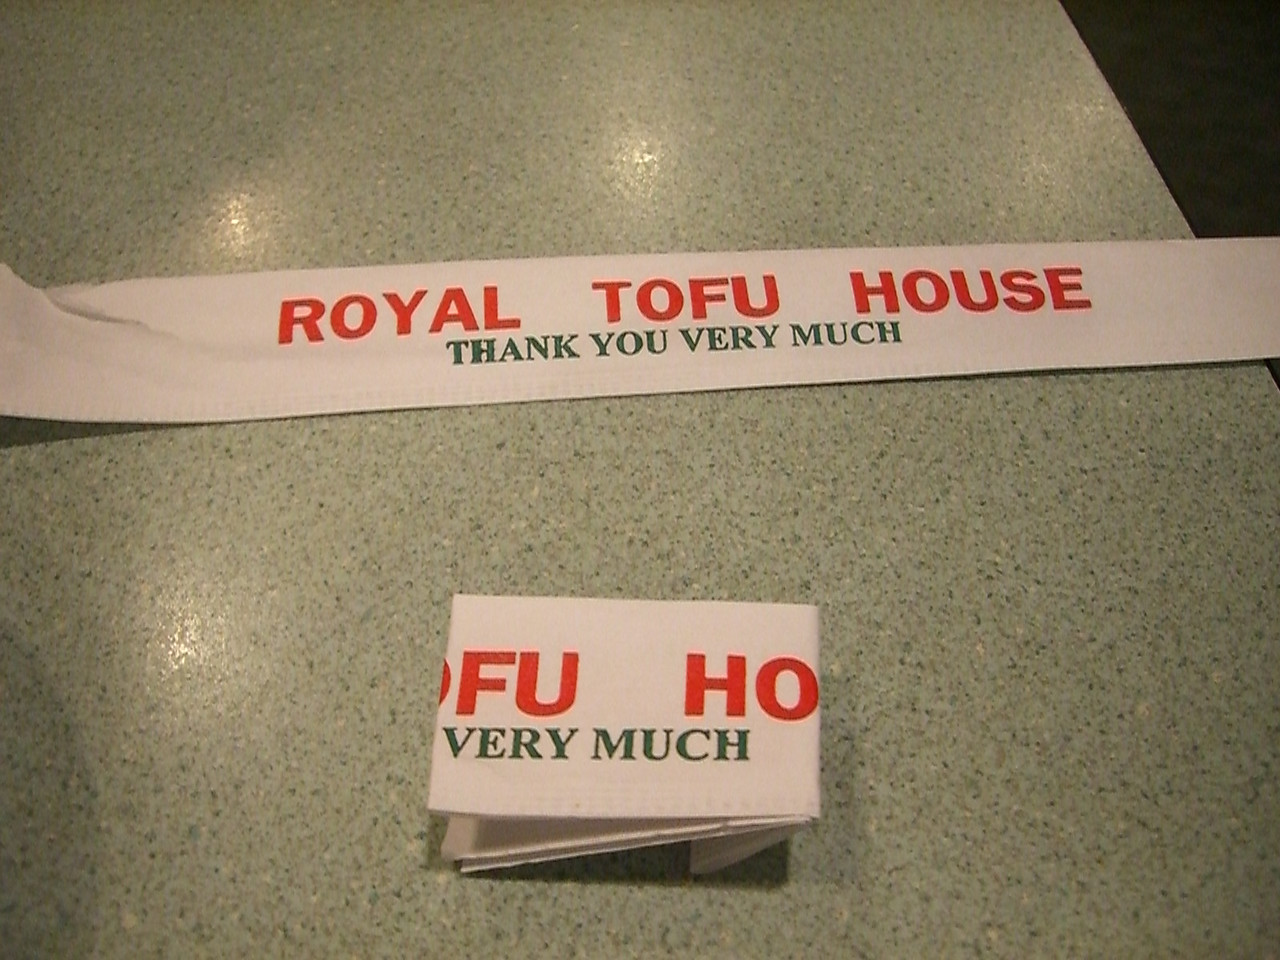 2006 05 30 Tue - Royal To F U Ho Use Thank You Very Much - Combined